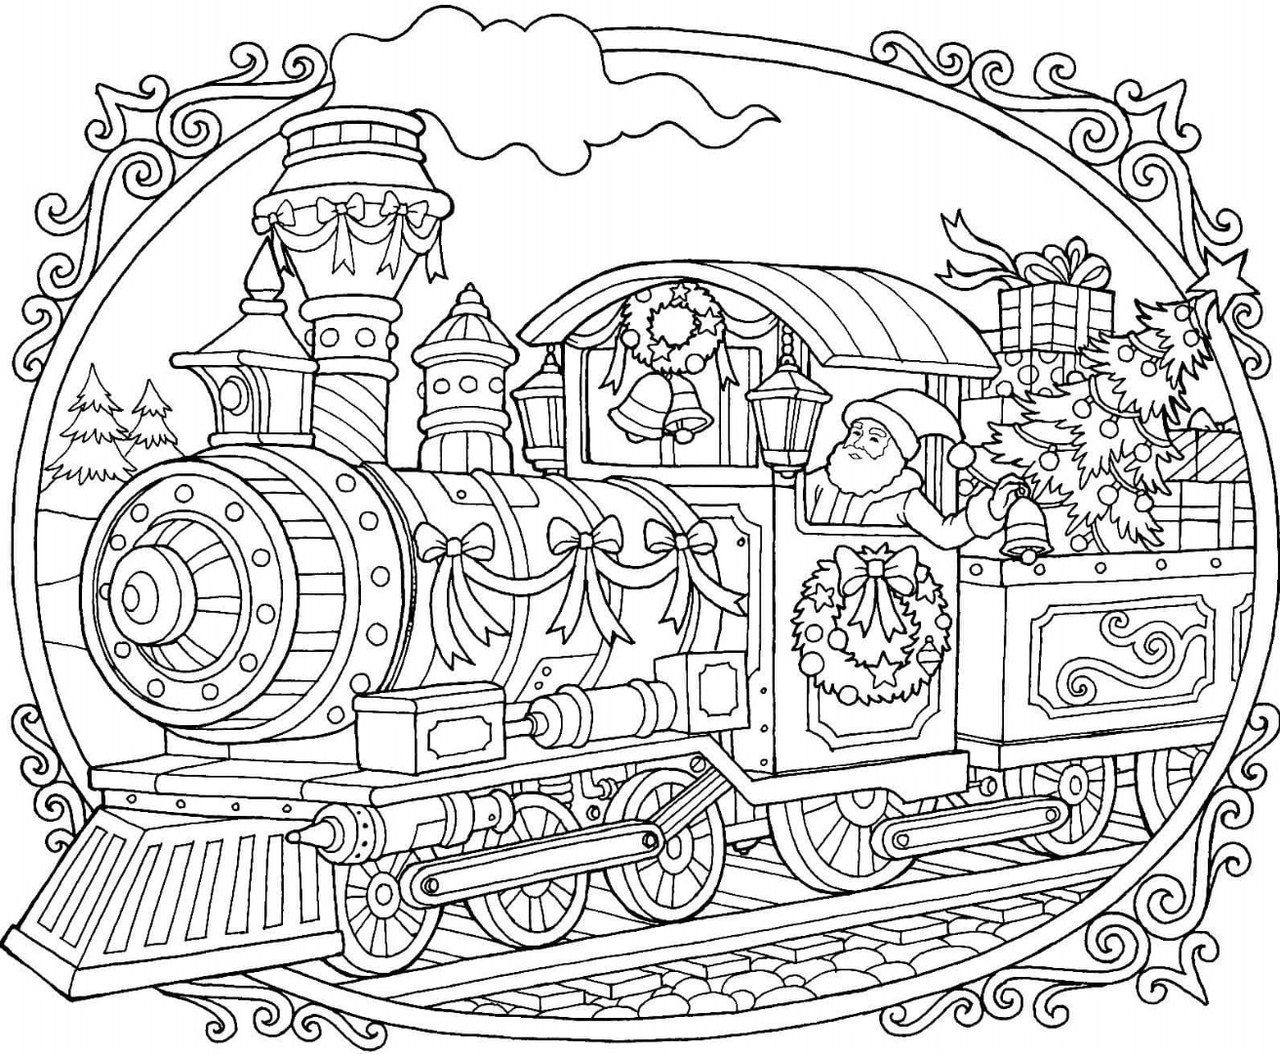 The Christmas Train coloring page